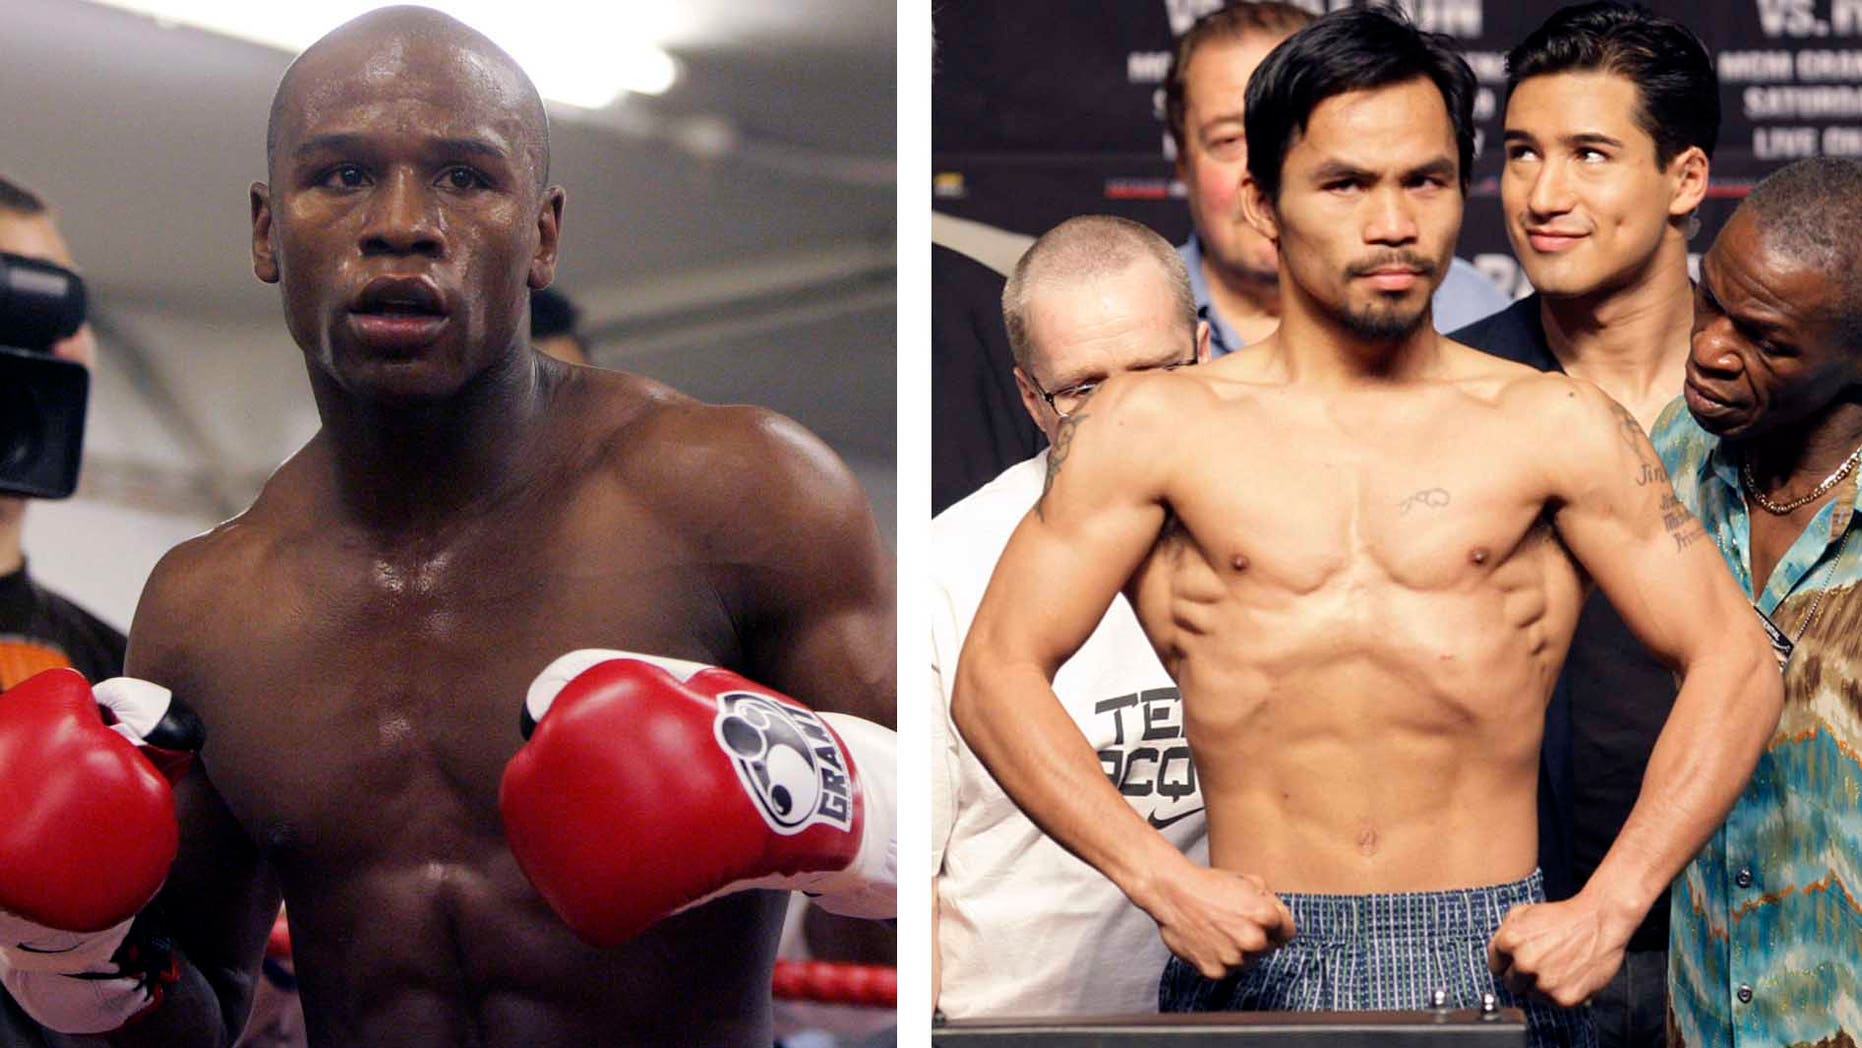 Floyd Mayweather Jr. will meet Manny Pacquiao on May 2, 2015 in a welterweight showdown that will be boxing's richest fight ever. Mayweather himself announced the bout Friday, Feb. 20, 2015 after months of negotiations, posting a picture of the signed contract online. (AP Photos/Alastair Grant and Rick Bowmer, File)